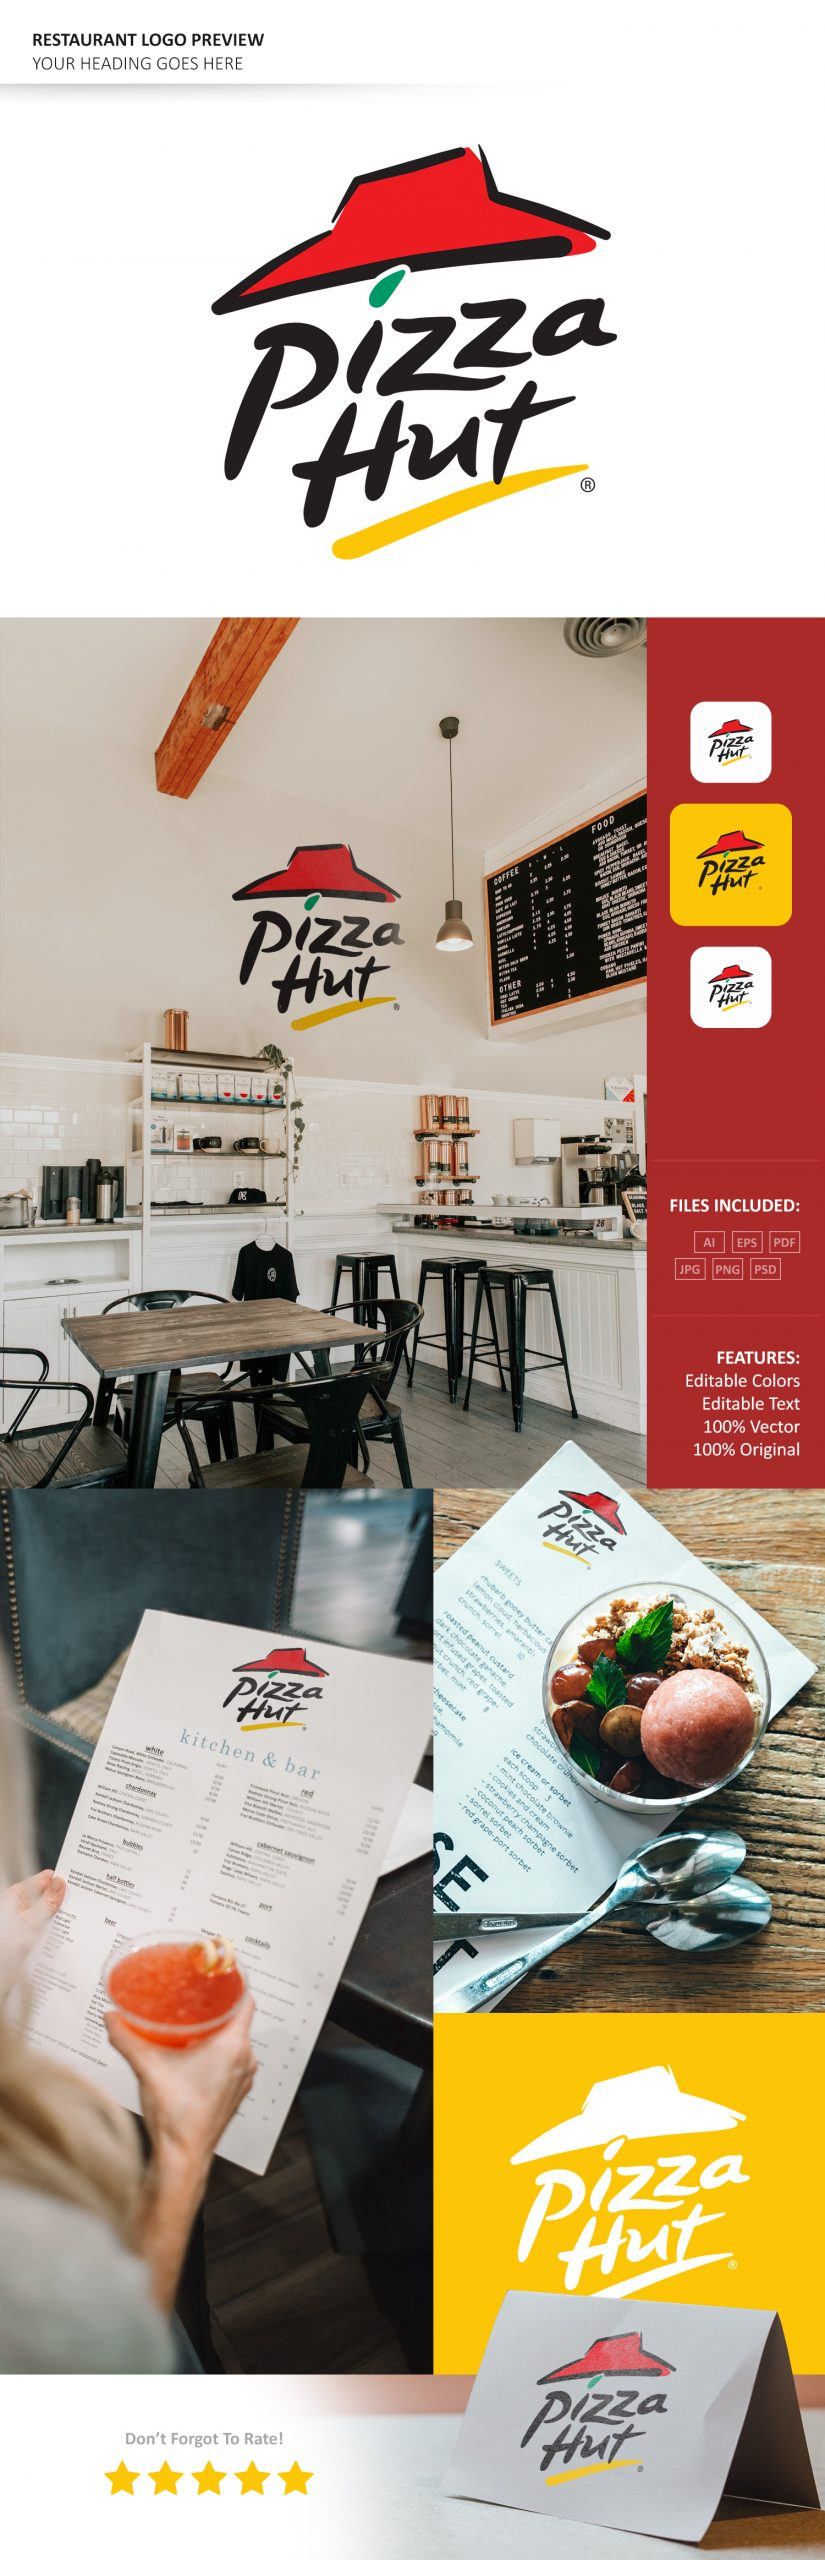 Restaurant Logo Mockup Template by GraphicsFamily